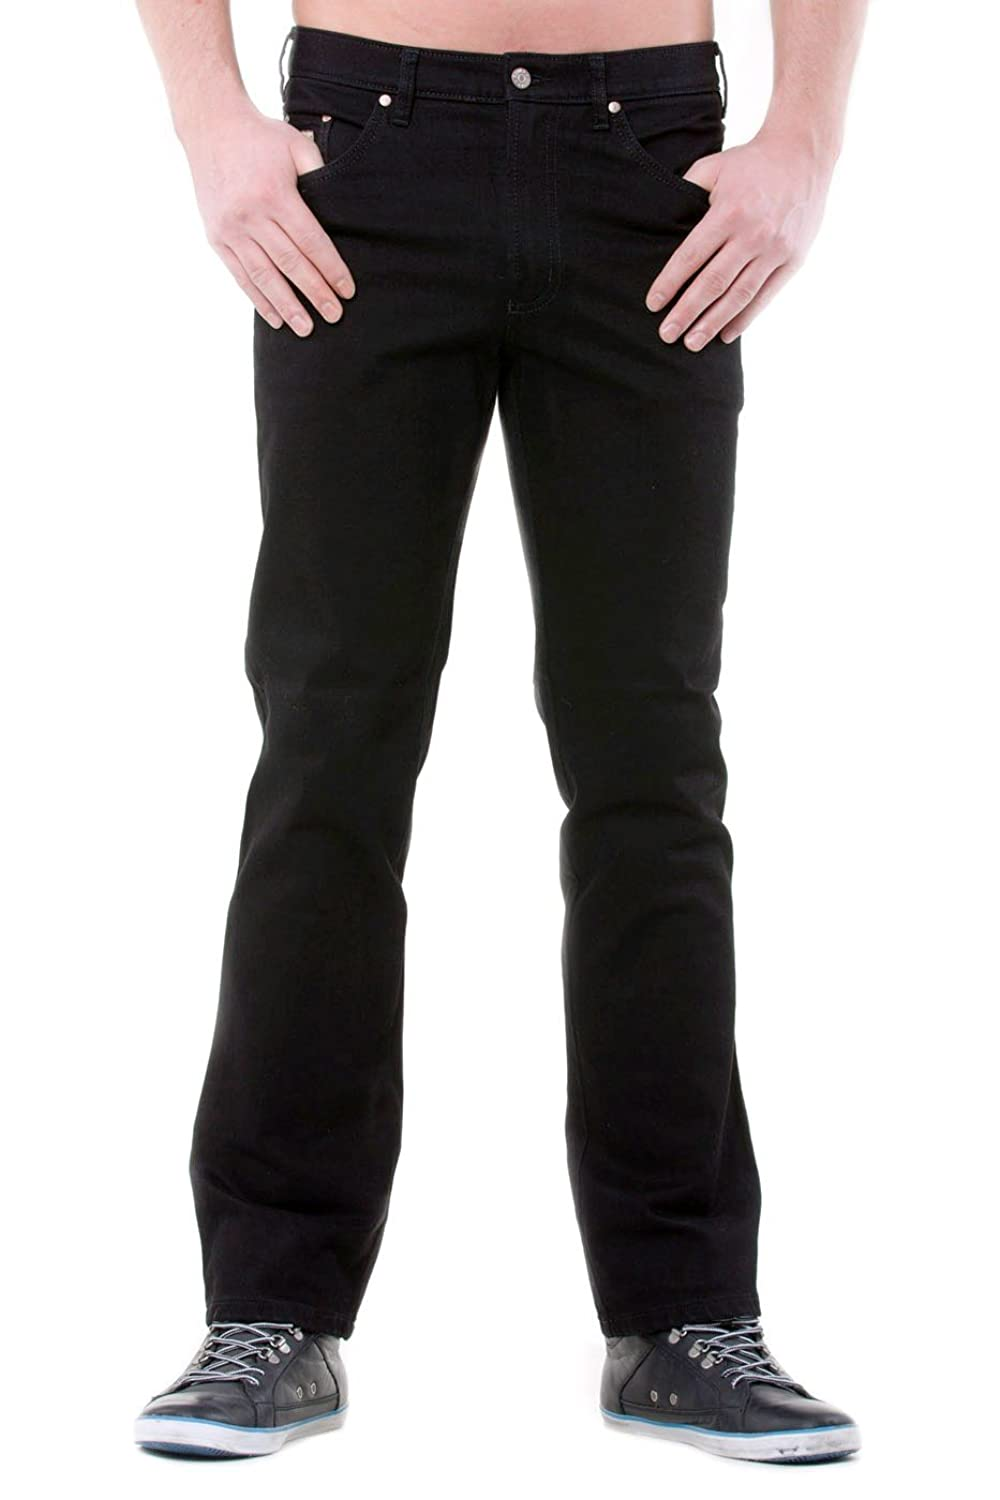 Revils Men's Jeans Black black rinse washed